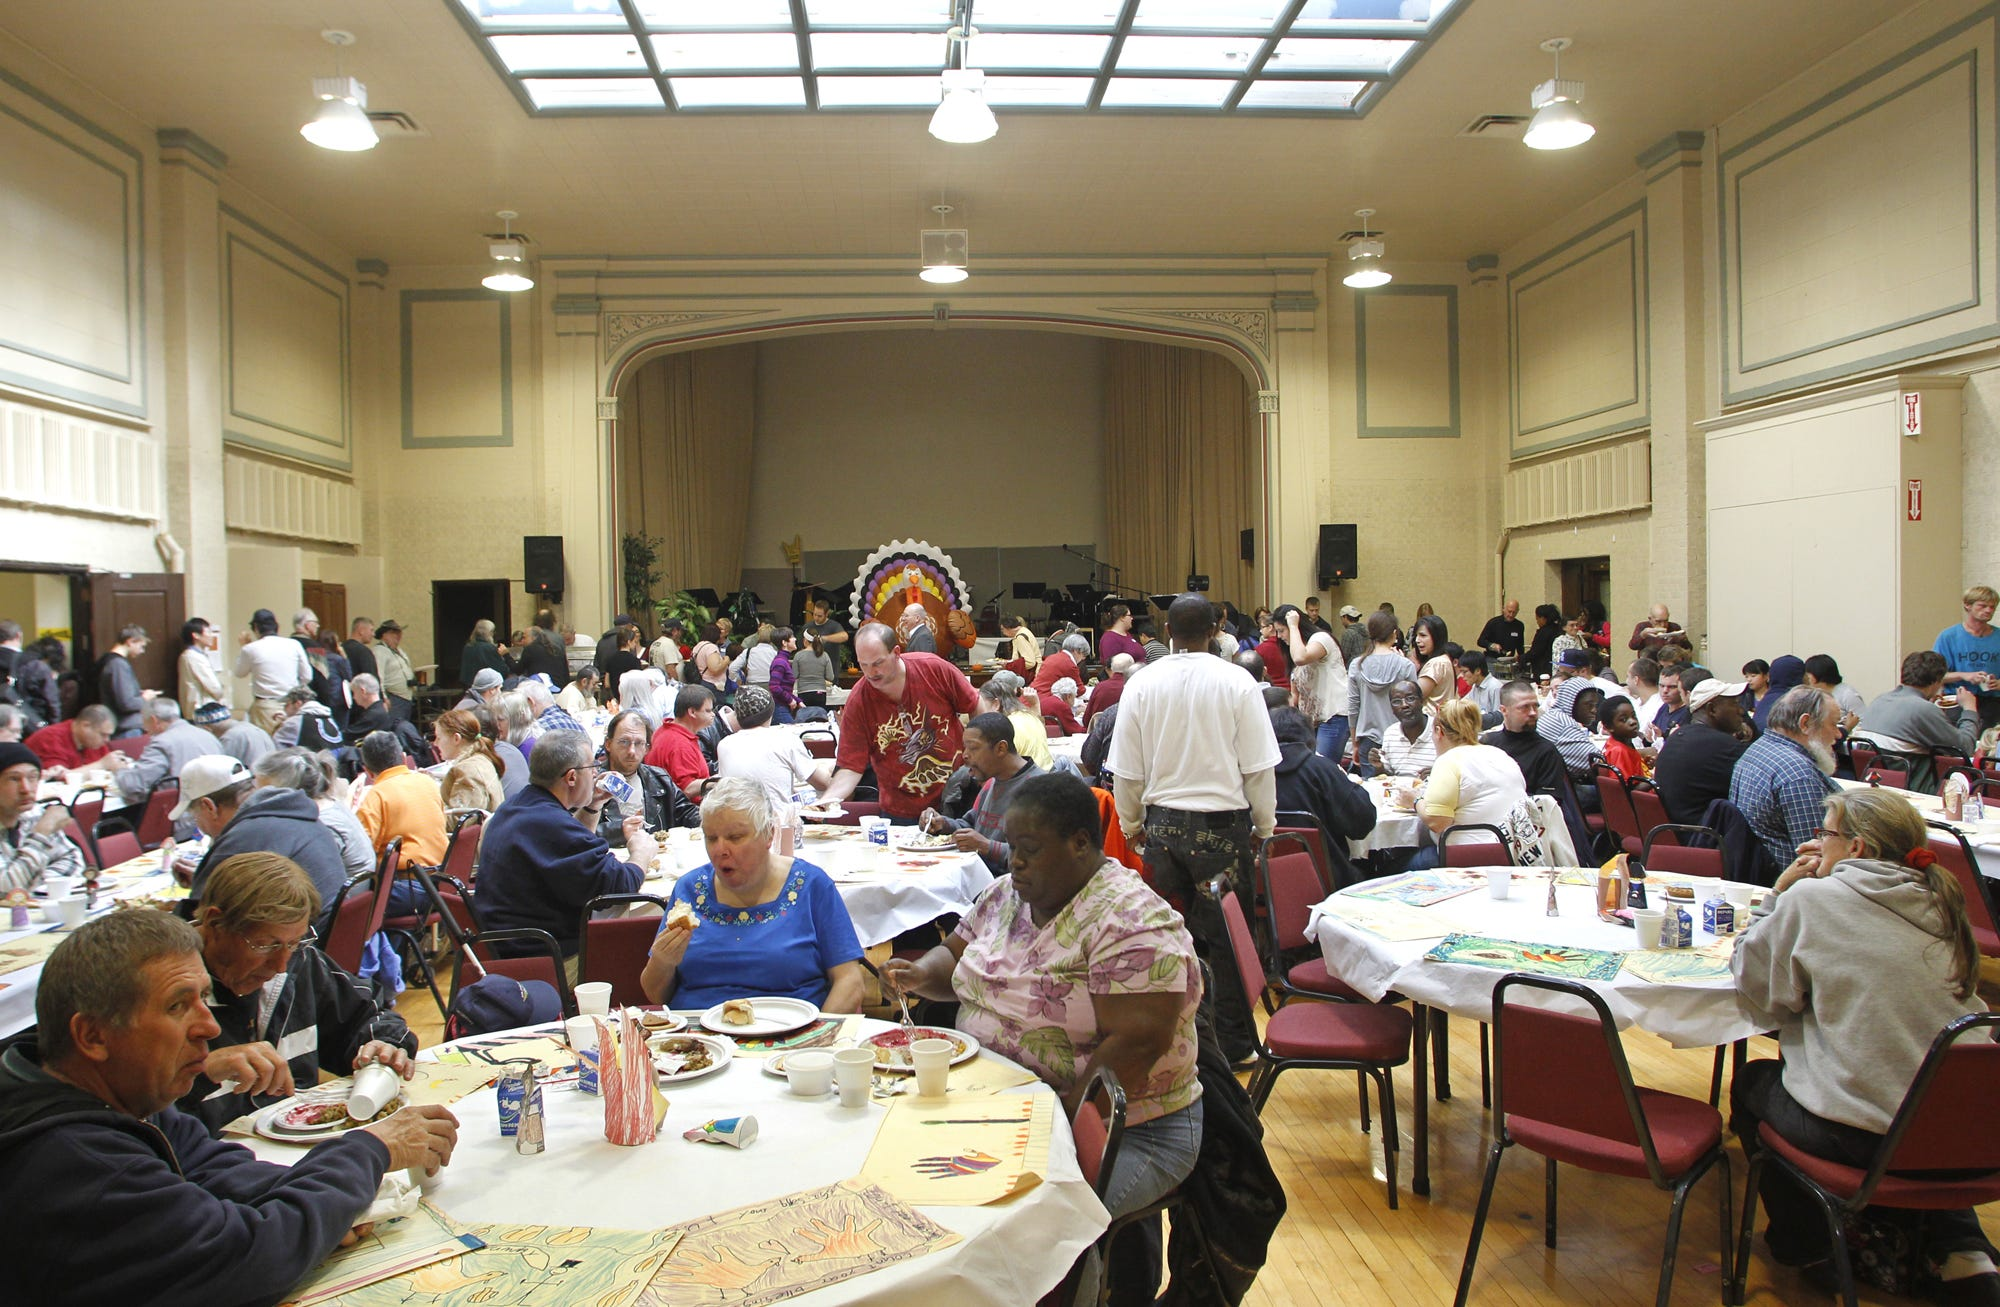 Guests fill the Education Building at Central Presbyterian Church for Lafayette Urban Ministry's Community Thanksgiving Celebration Thursday, November 22, 2012, at Central Presbyterian Church in Lafayette. LUM executive director Joe Micon estimated 800-900 would be served at this year's meal.